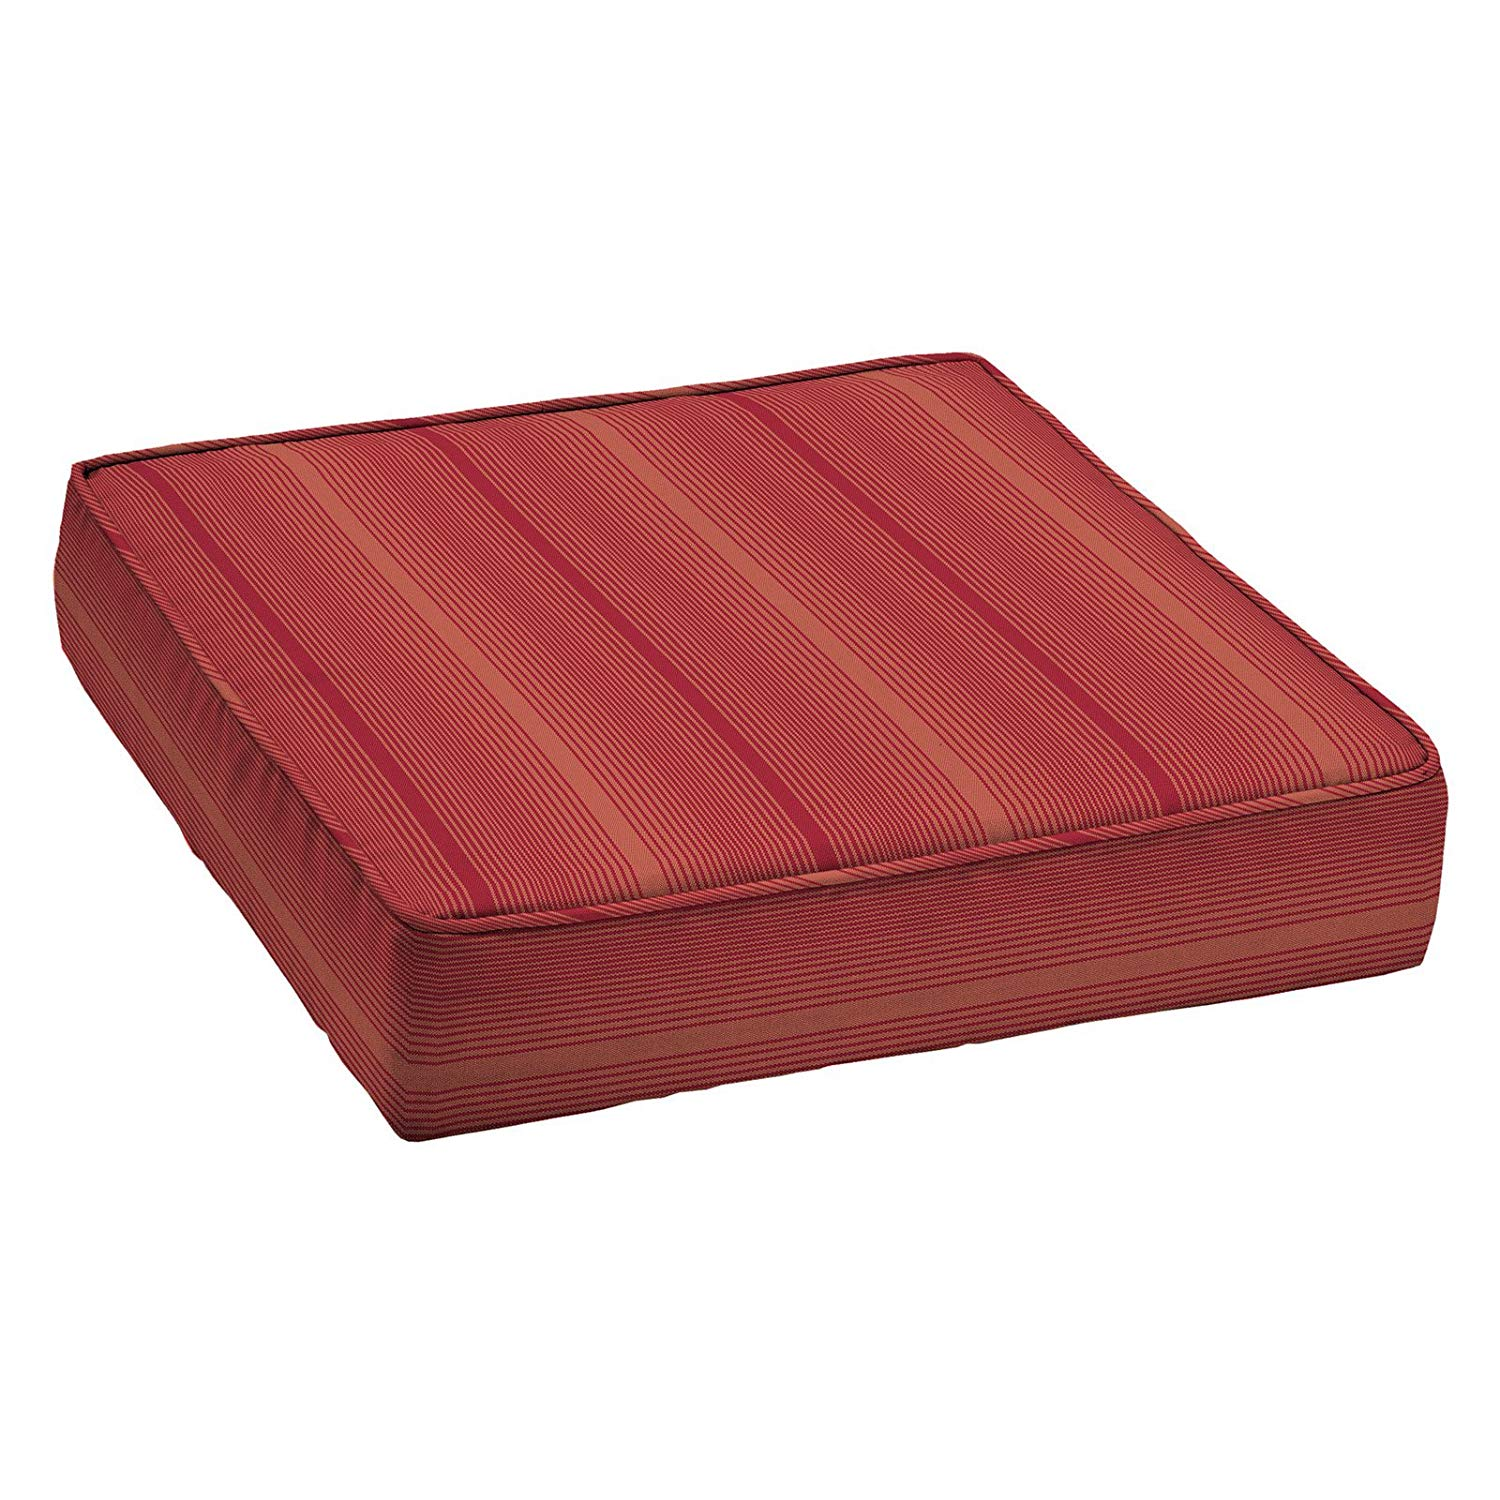 Home Improvements Red Stripe Premium Acrylic 24 x 24 Outdoor Deep Seat Cushion Patio Deep Seating Chair Cushion